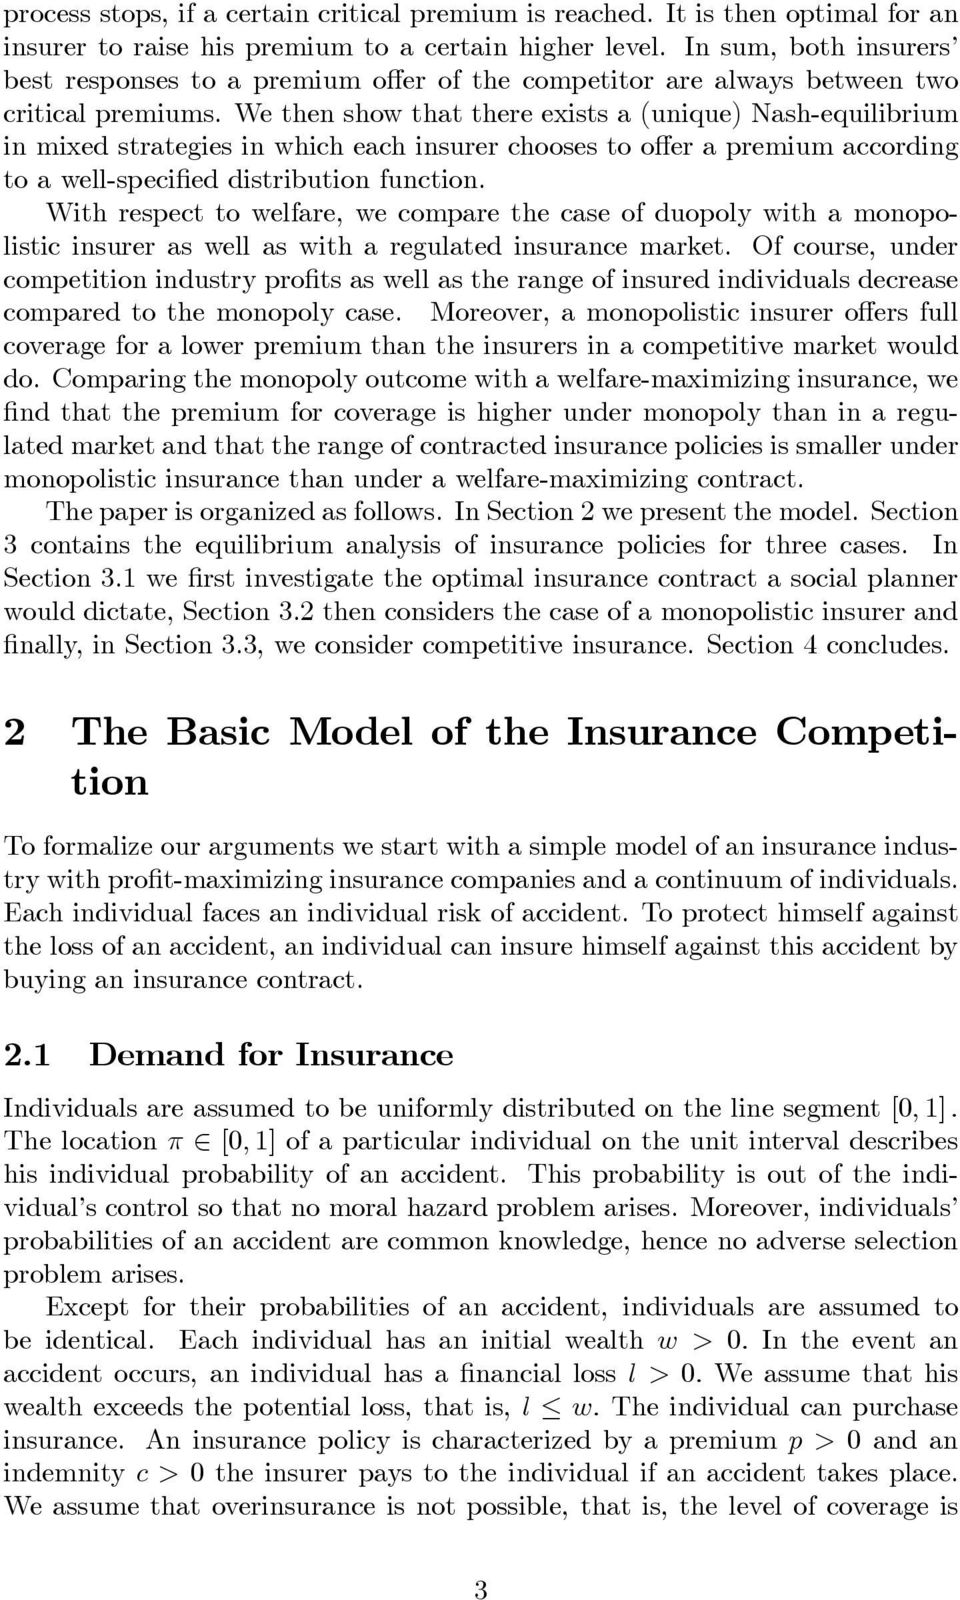 We then show that there exists a (unique) Nash-equiibrium in mixed strategies in which each insurer chooses to offer a premium according to a we-specified distribution function.